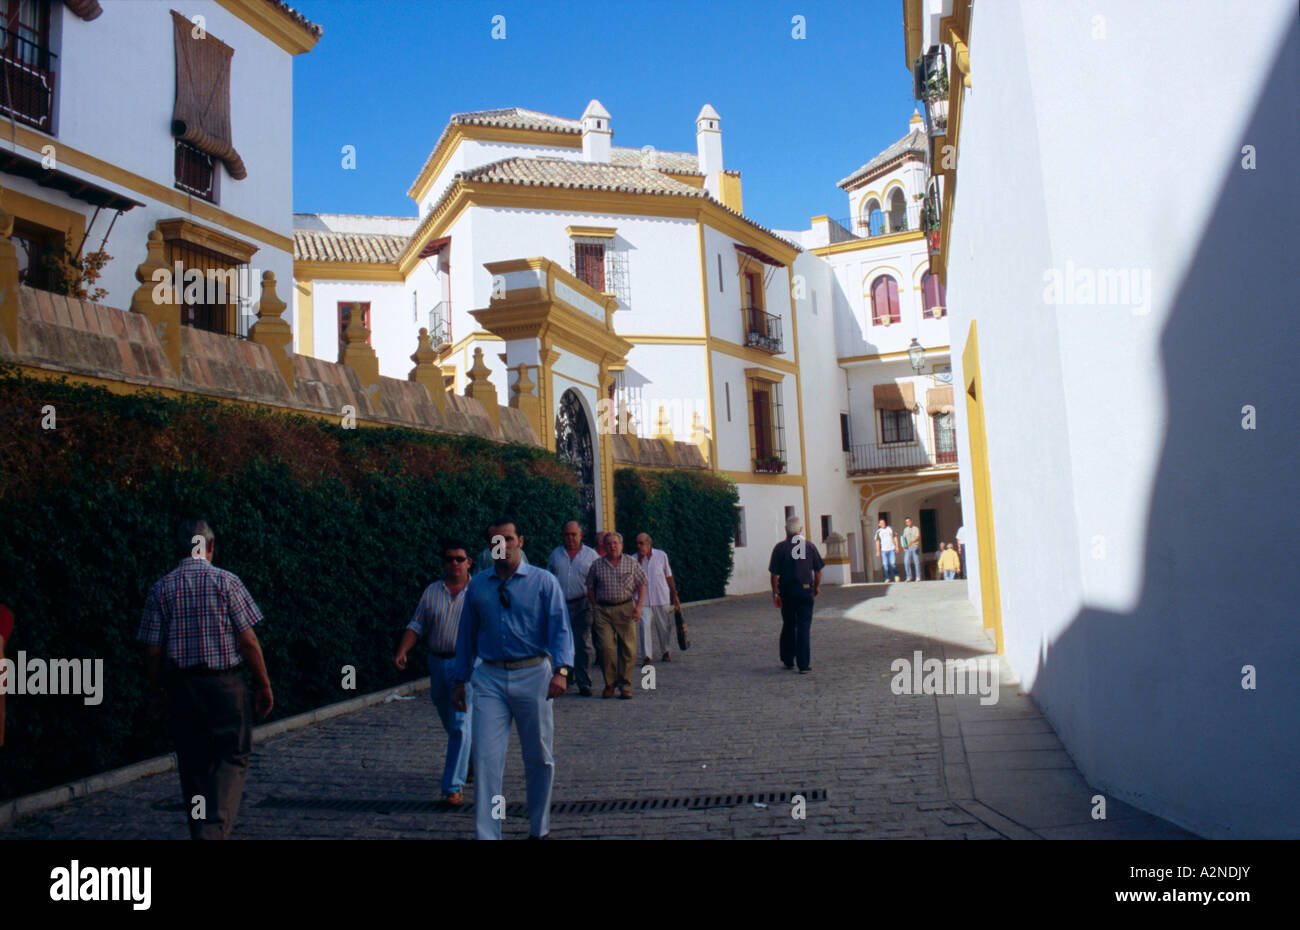 People coming out from bullring, Real Maestranza de Caballeria de Sevilla, Seville, Andalusia, Spain - Stock Image